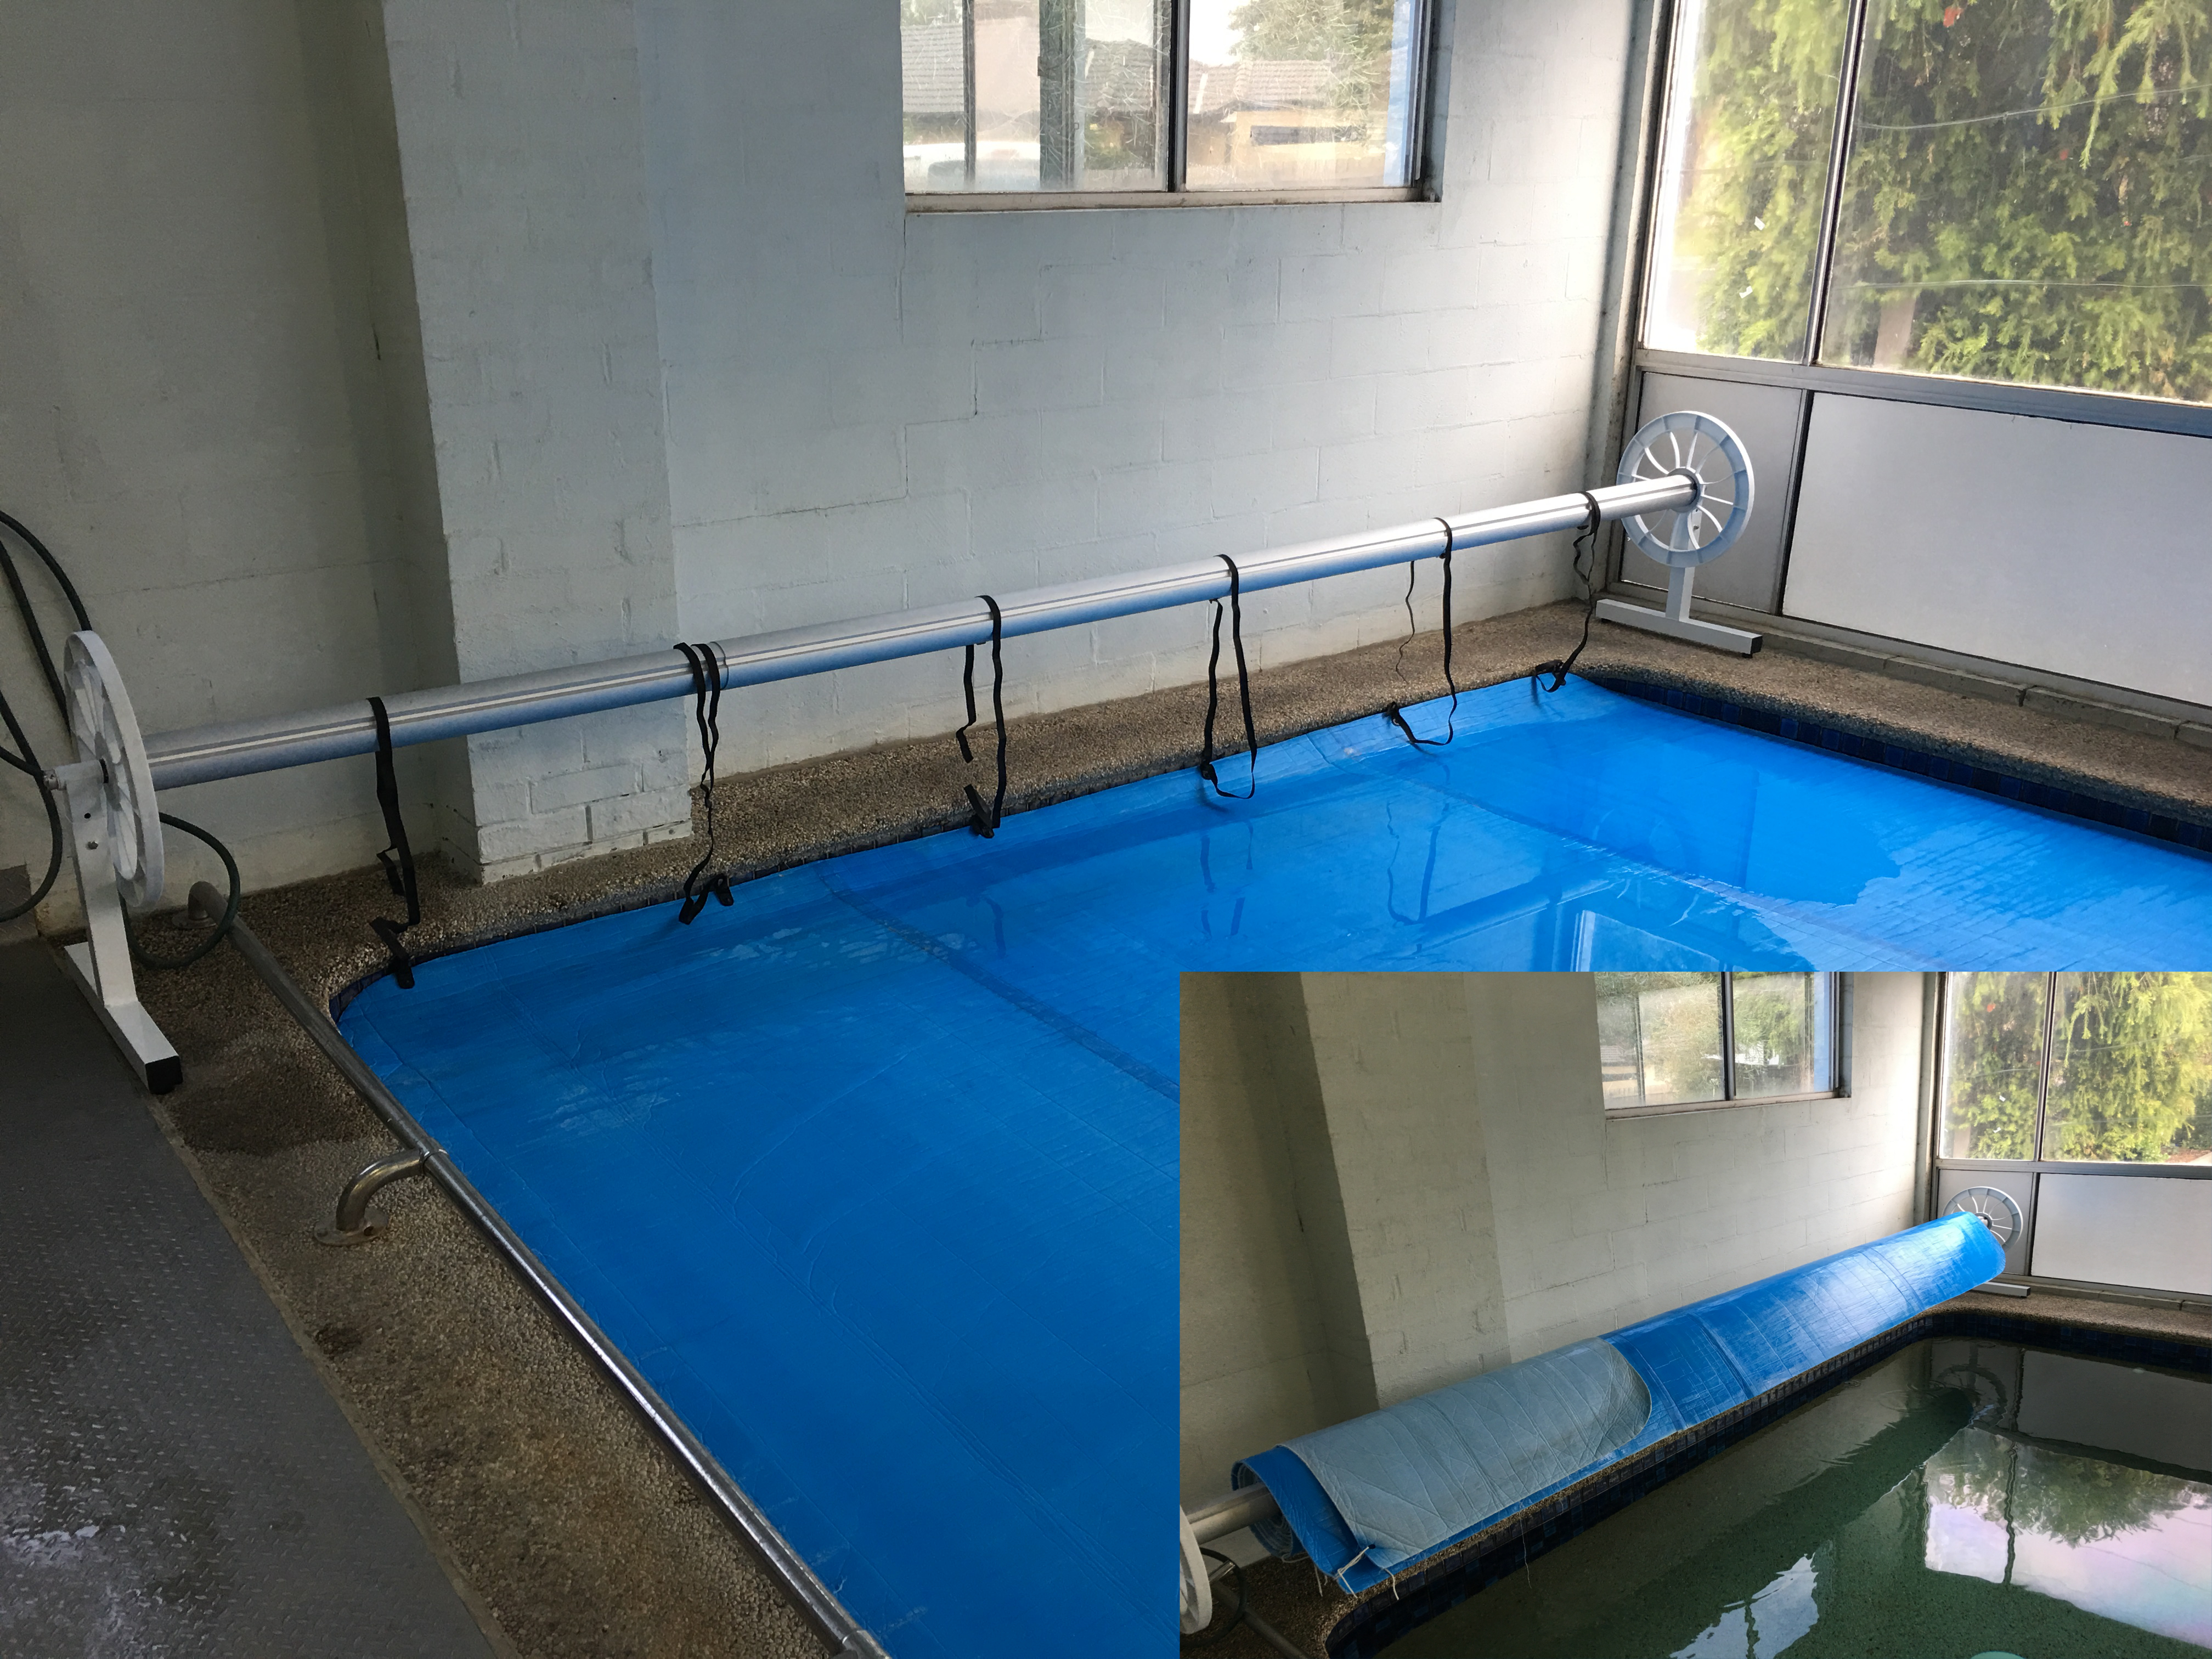 Thermal blanket reel aqua pool covers melbourne australia for Swimming pool covers melbourne